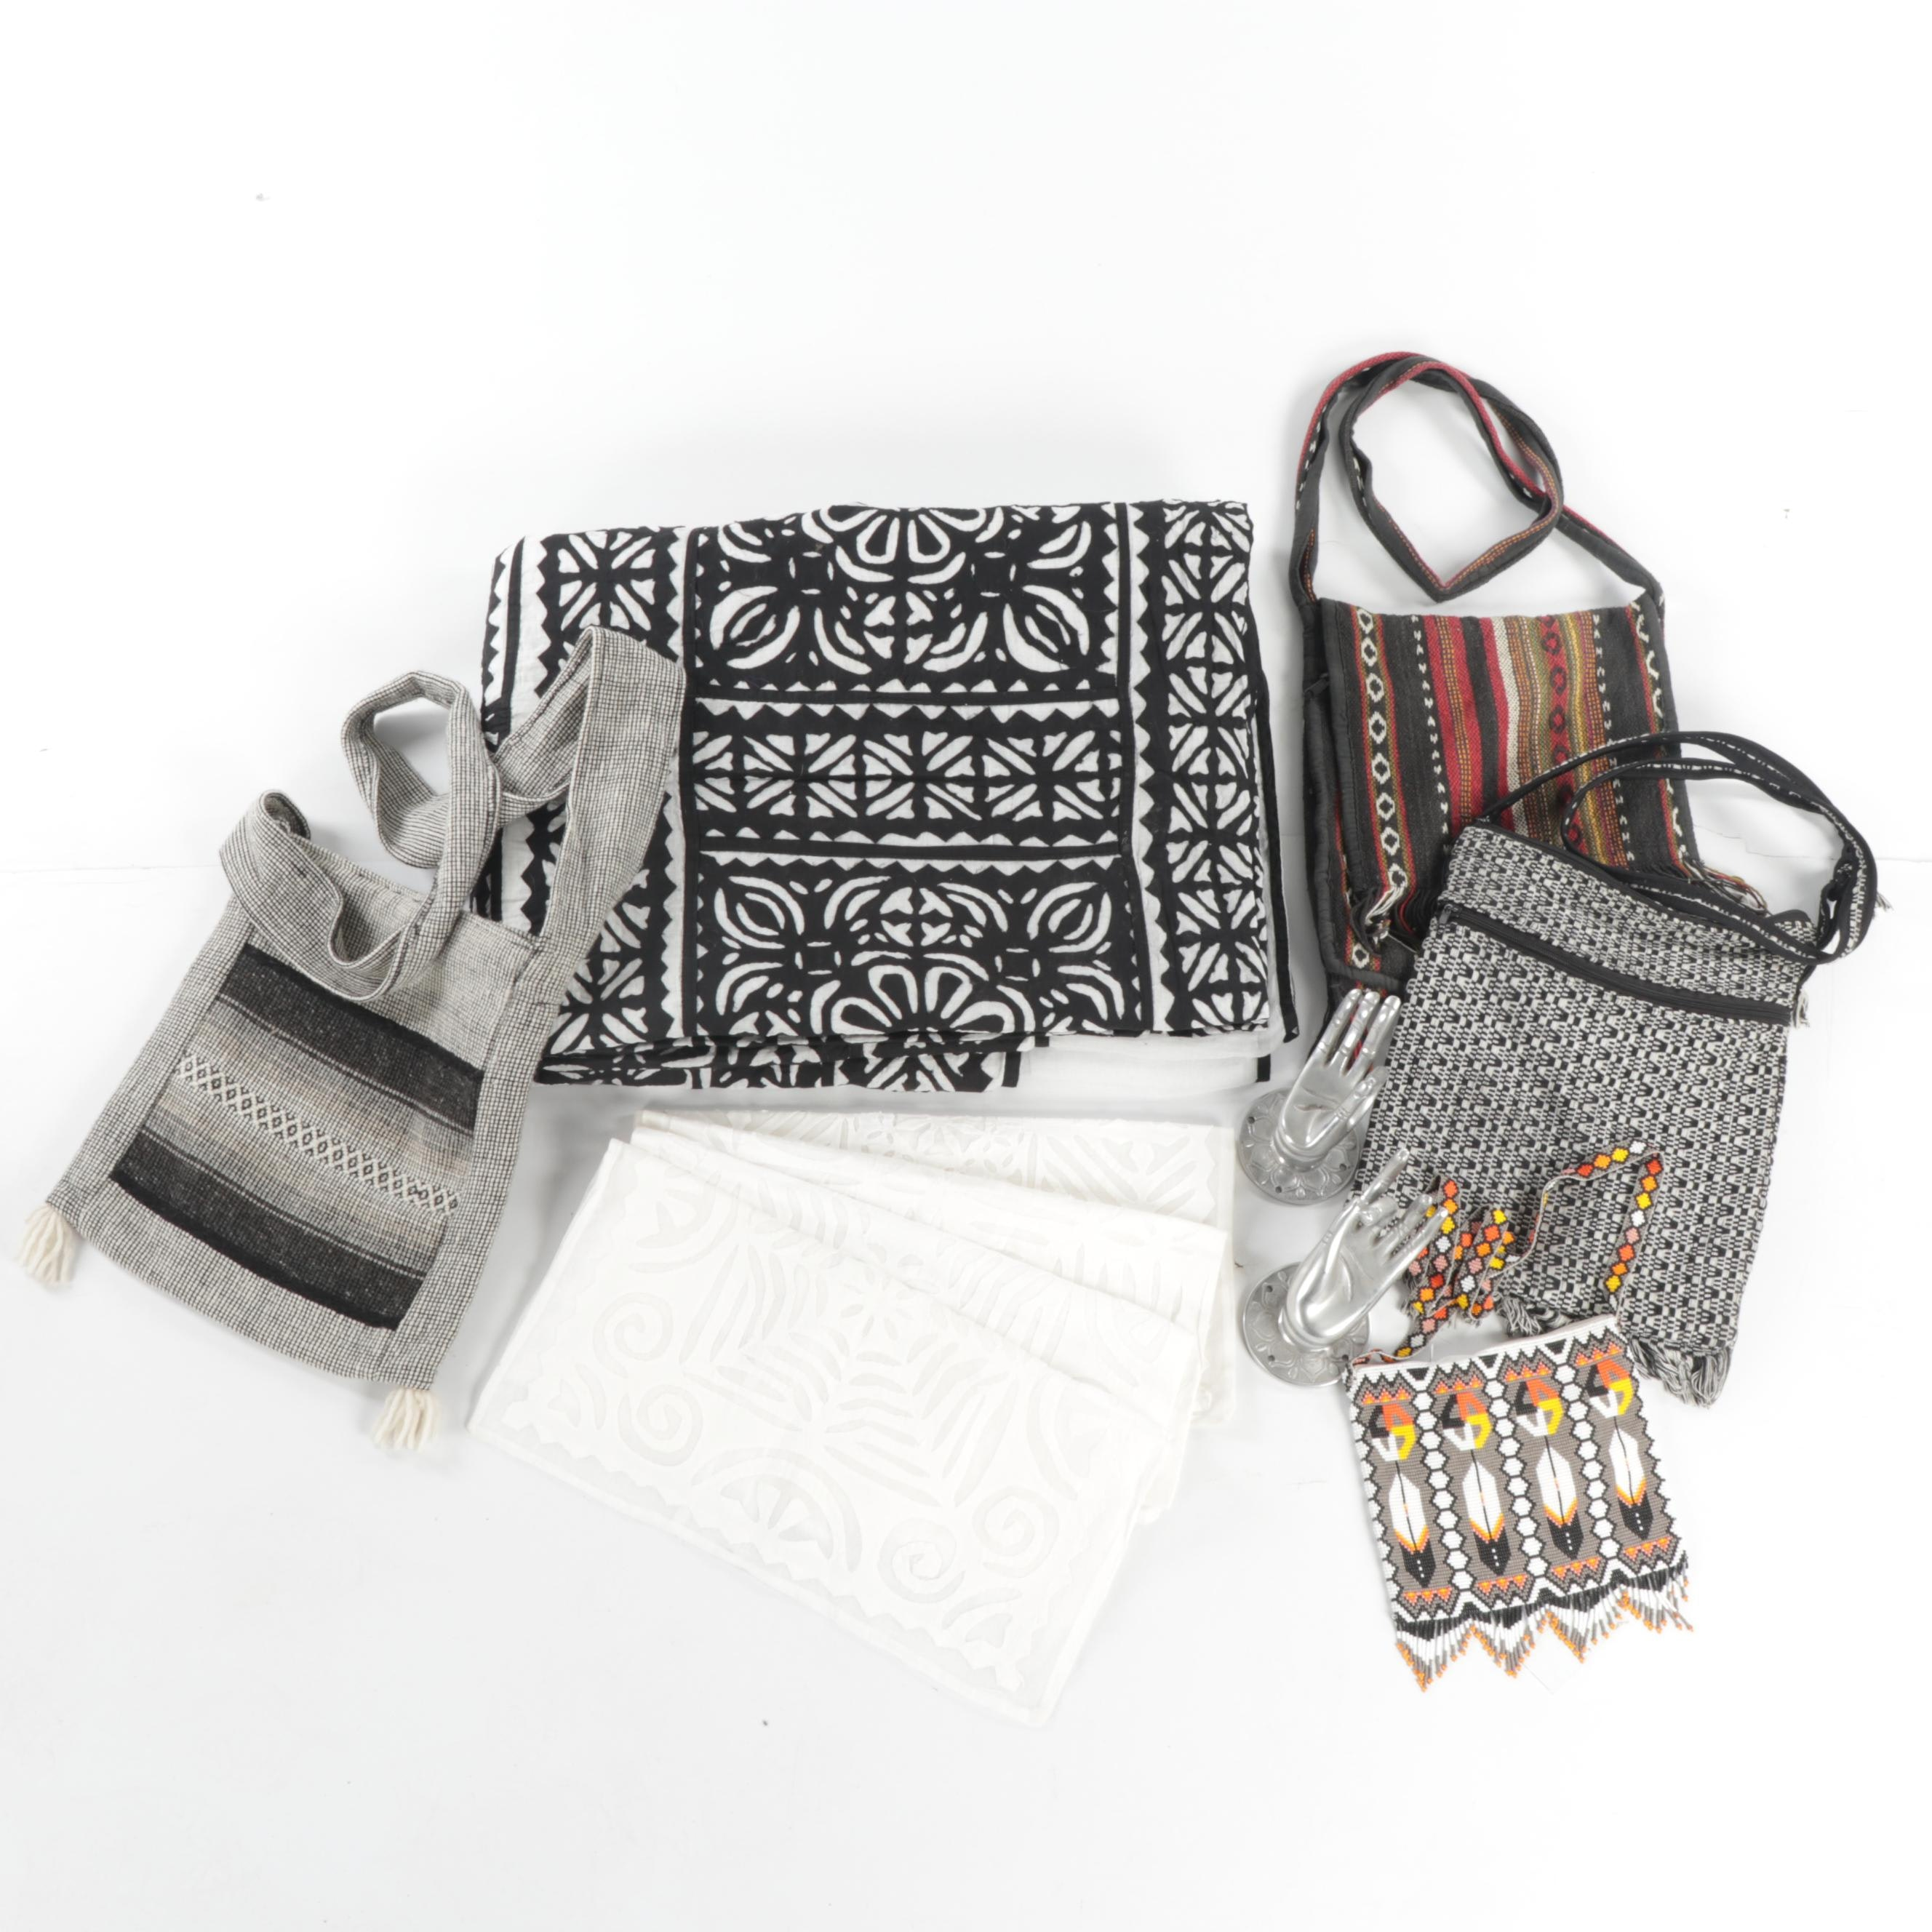 Beaded Huichol-Made Bag and Other Woven Folk Bags and Linens